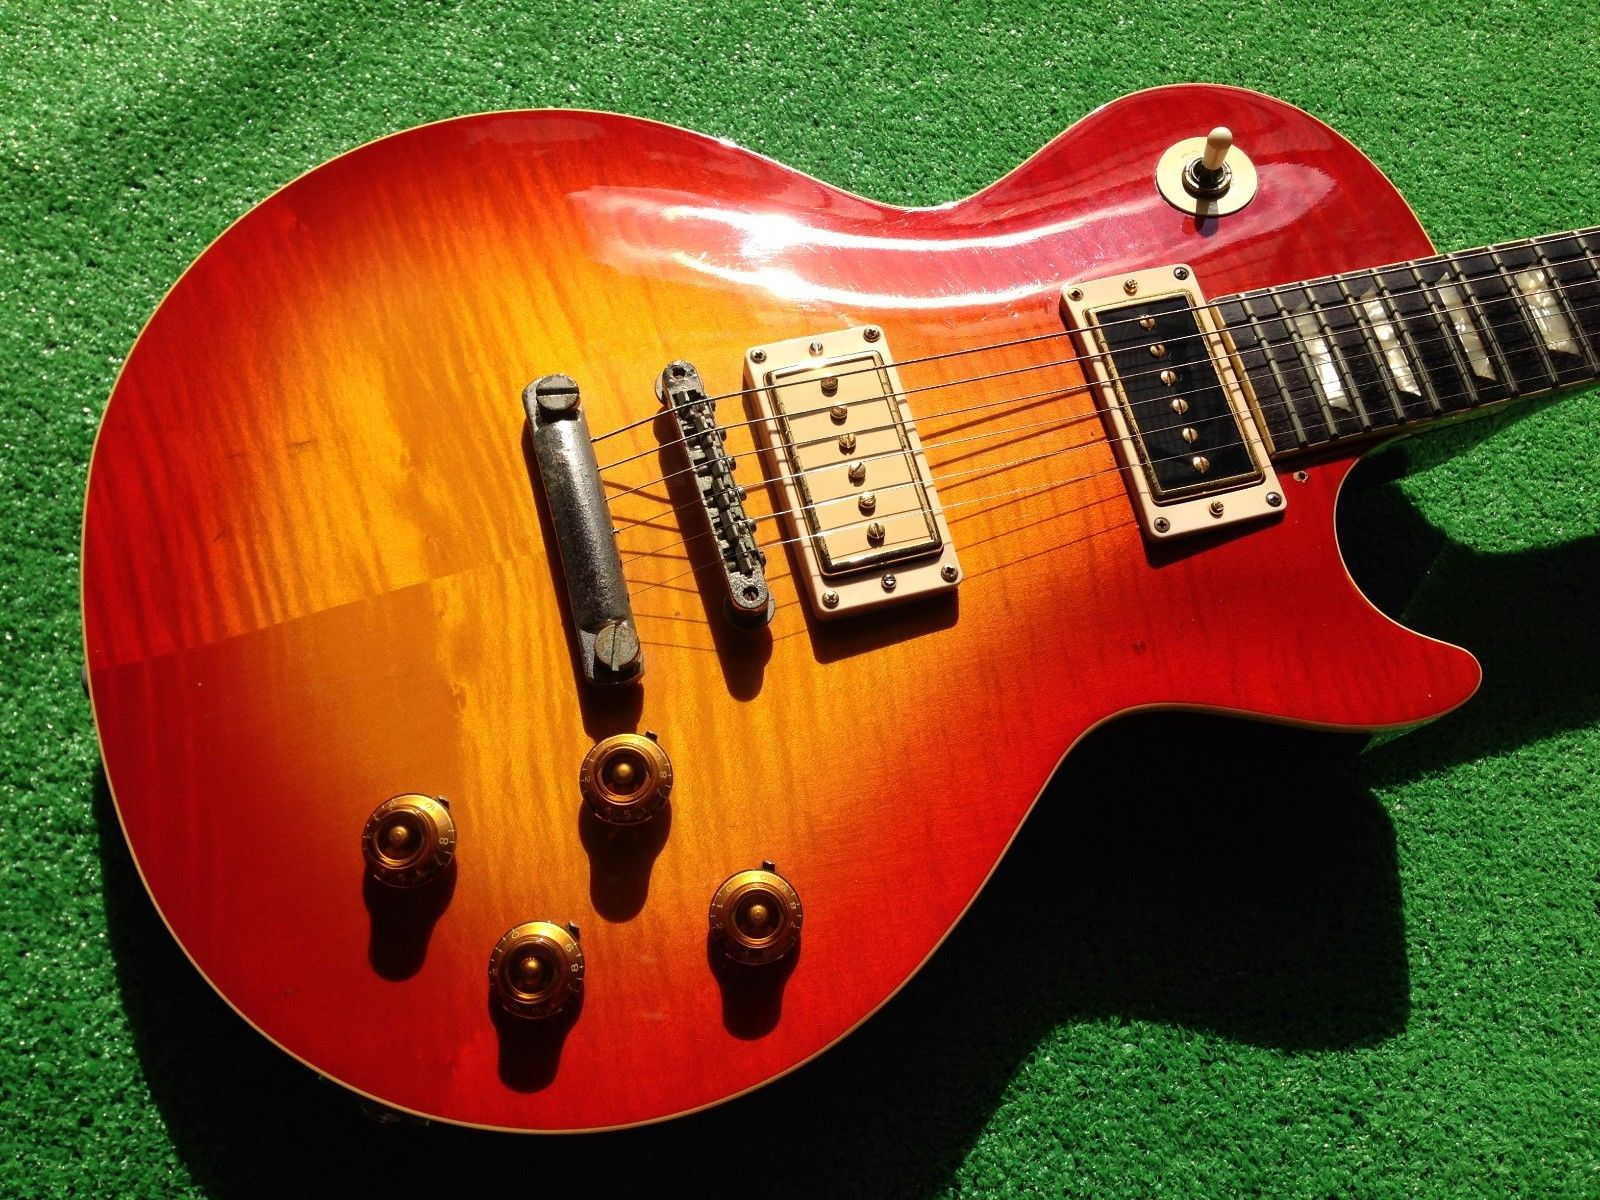 burny les paul dating The true story behind japanese 'lawsuit' guitars all  seventies les paul lookalikes featured names like burny,  in 1957 pre-dating any lawsuit-era and the.